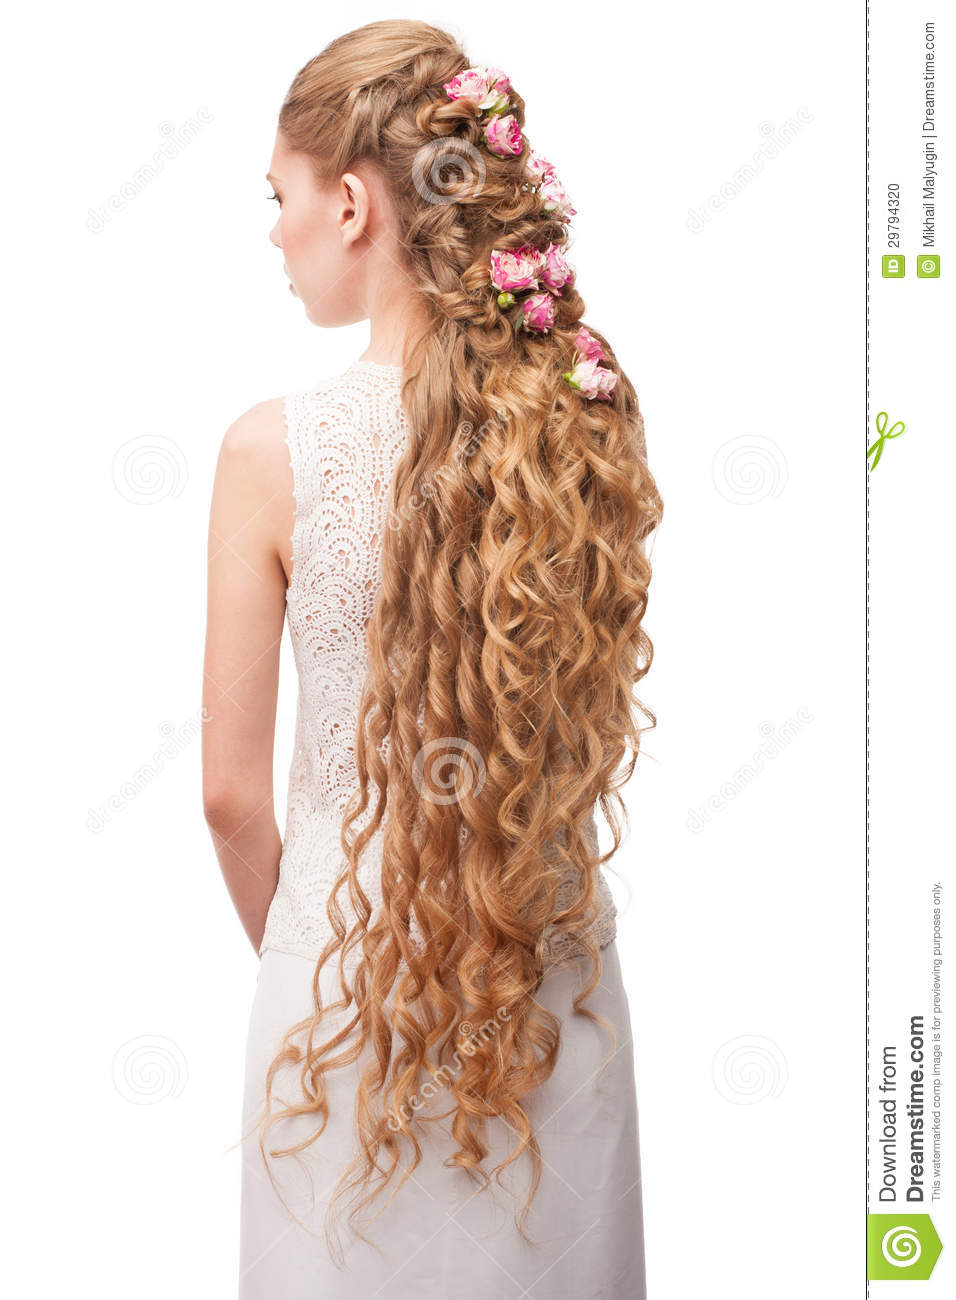 Woman With Curly Long Hair Stock Photo Image Of Hair 29794320